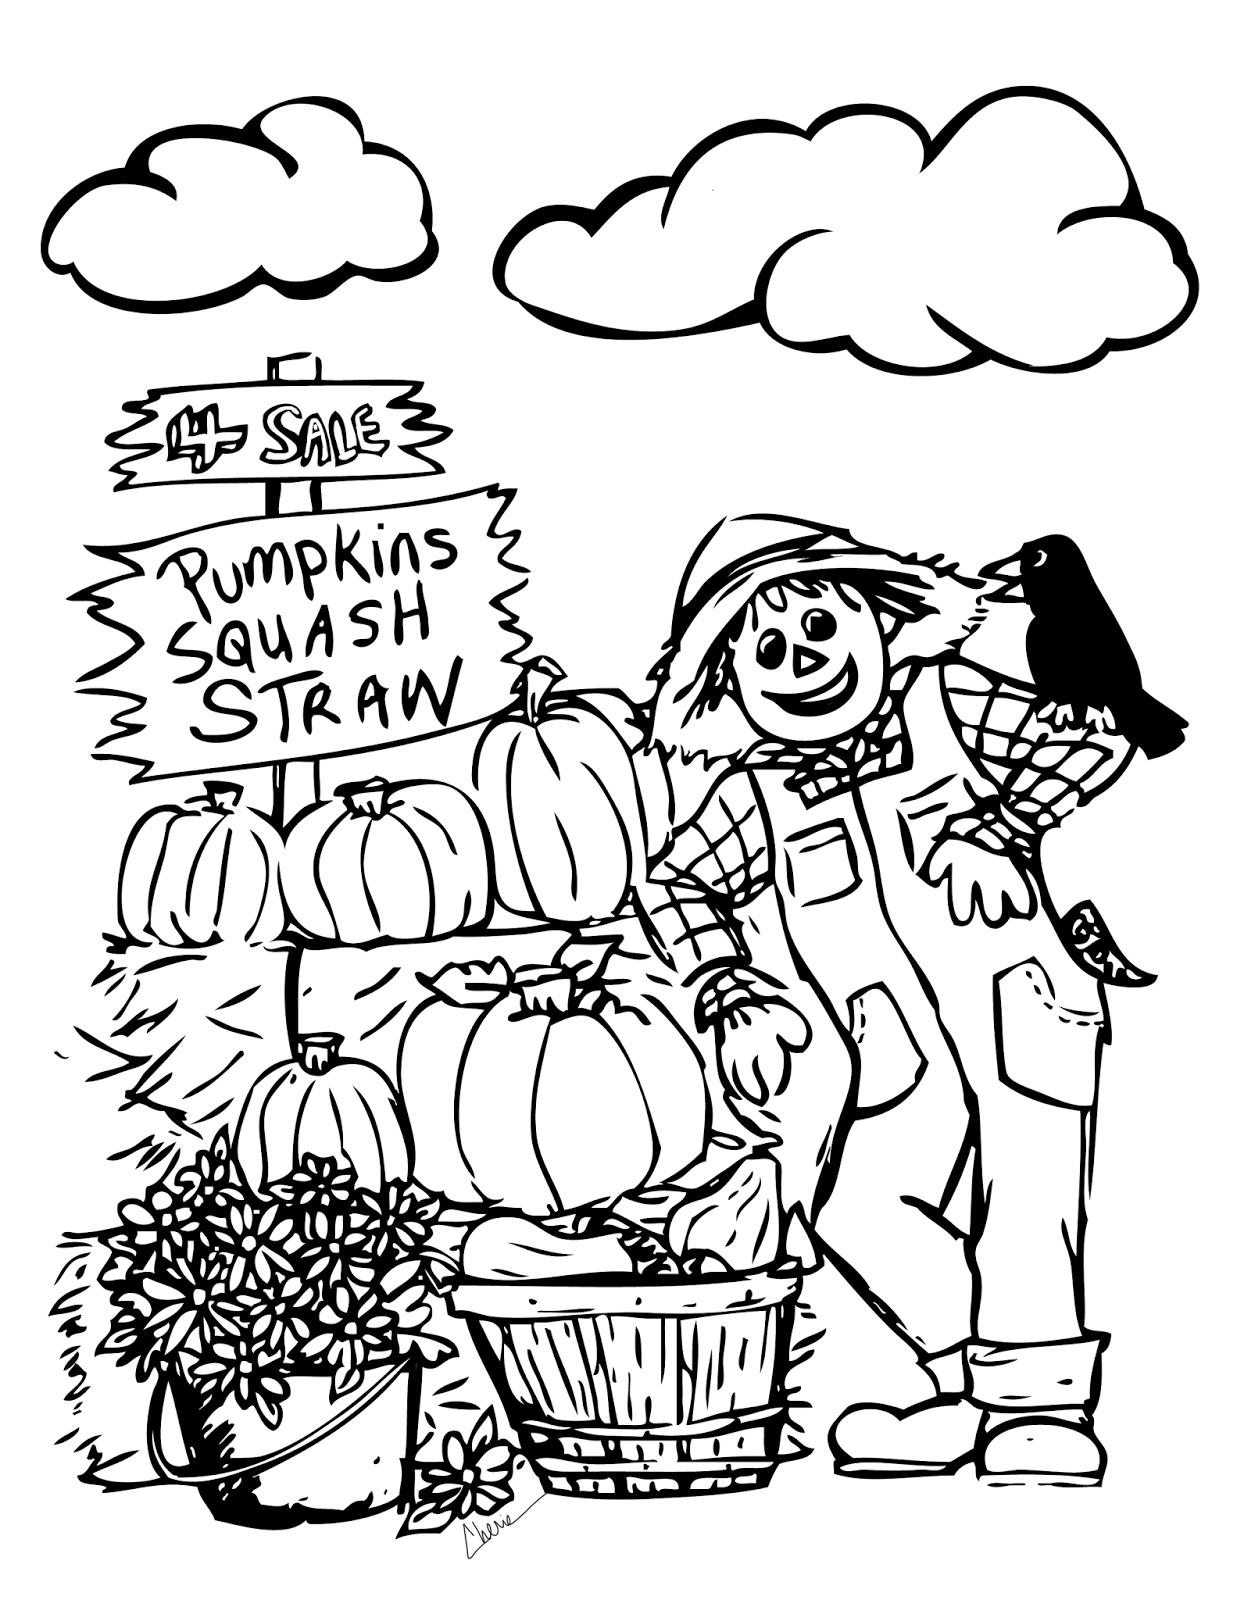 printable fall coloring page - Free Large Images | Coloring Pages ...